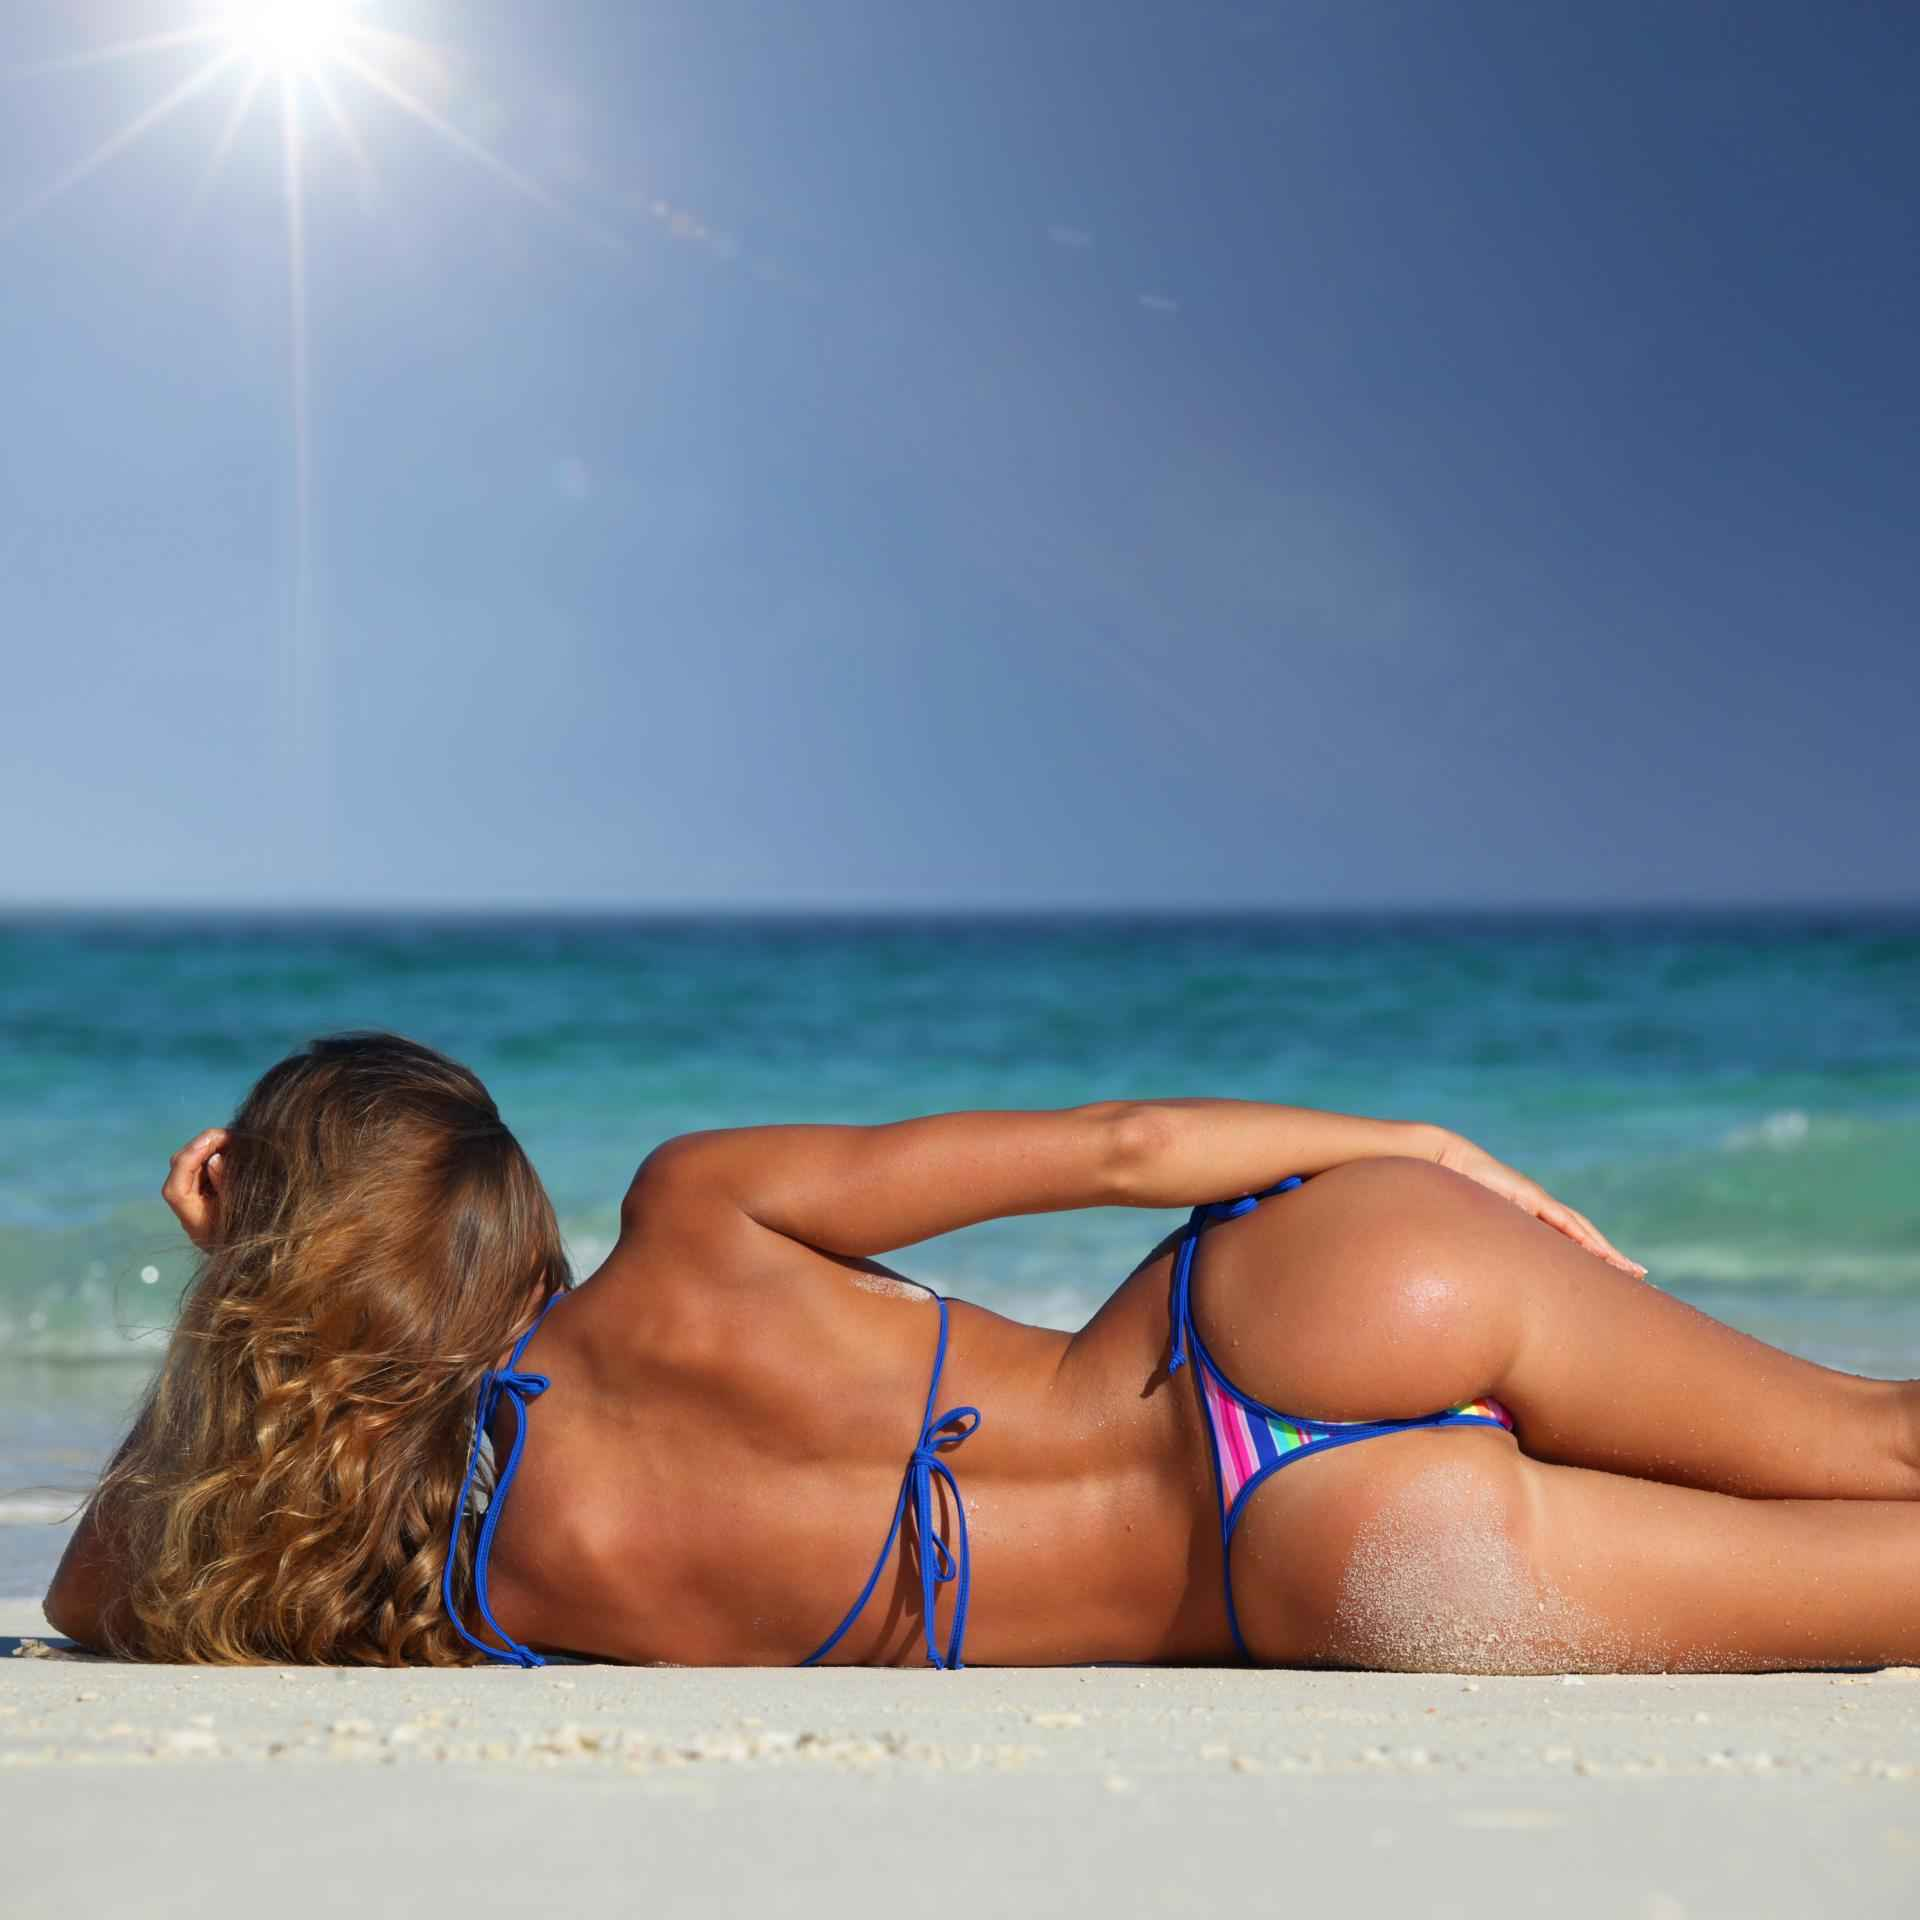 How to Safely Get Sun-Kissed Skin SDC.com